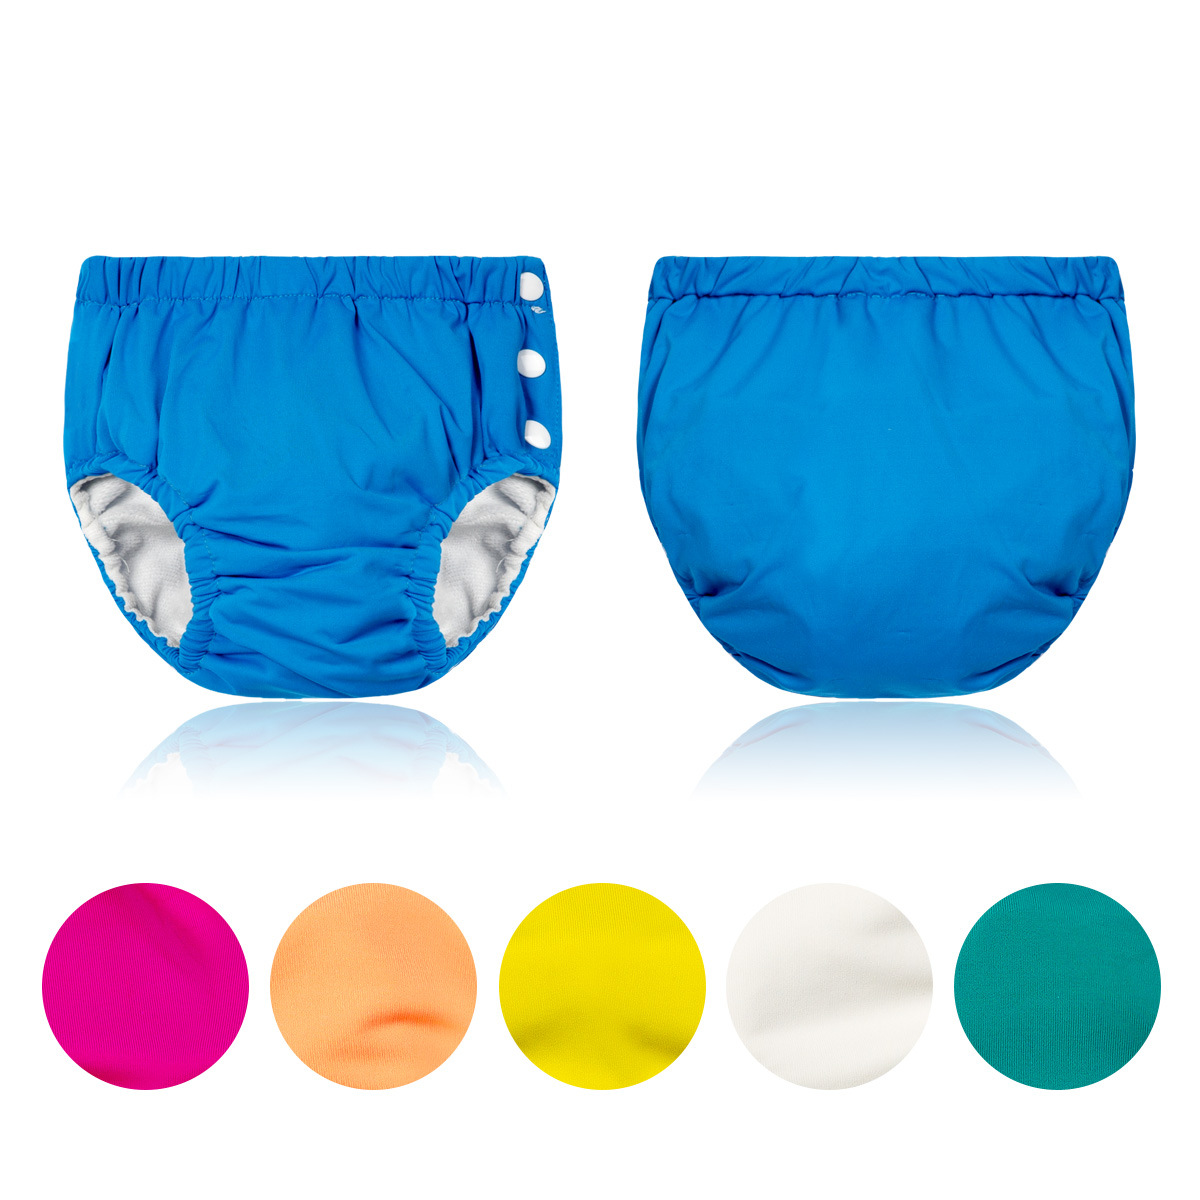 Baby Swimming Trunks Infant Learn Swimming Trunks Washable Pocket Urine Swimming Trunks Swimming Pool Learning Swimming Of Pants